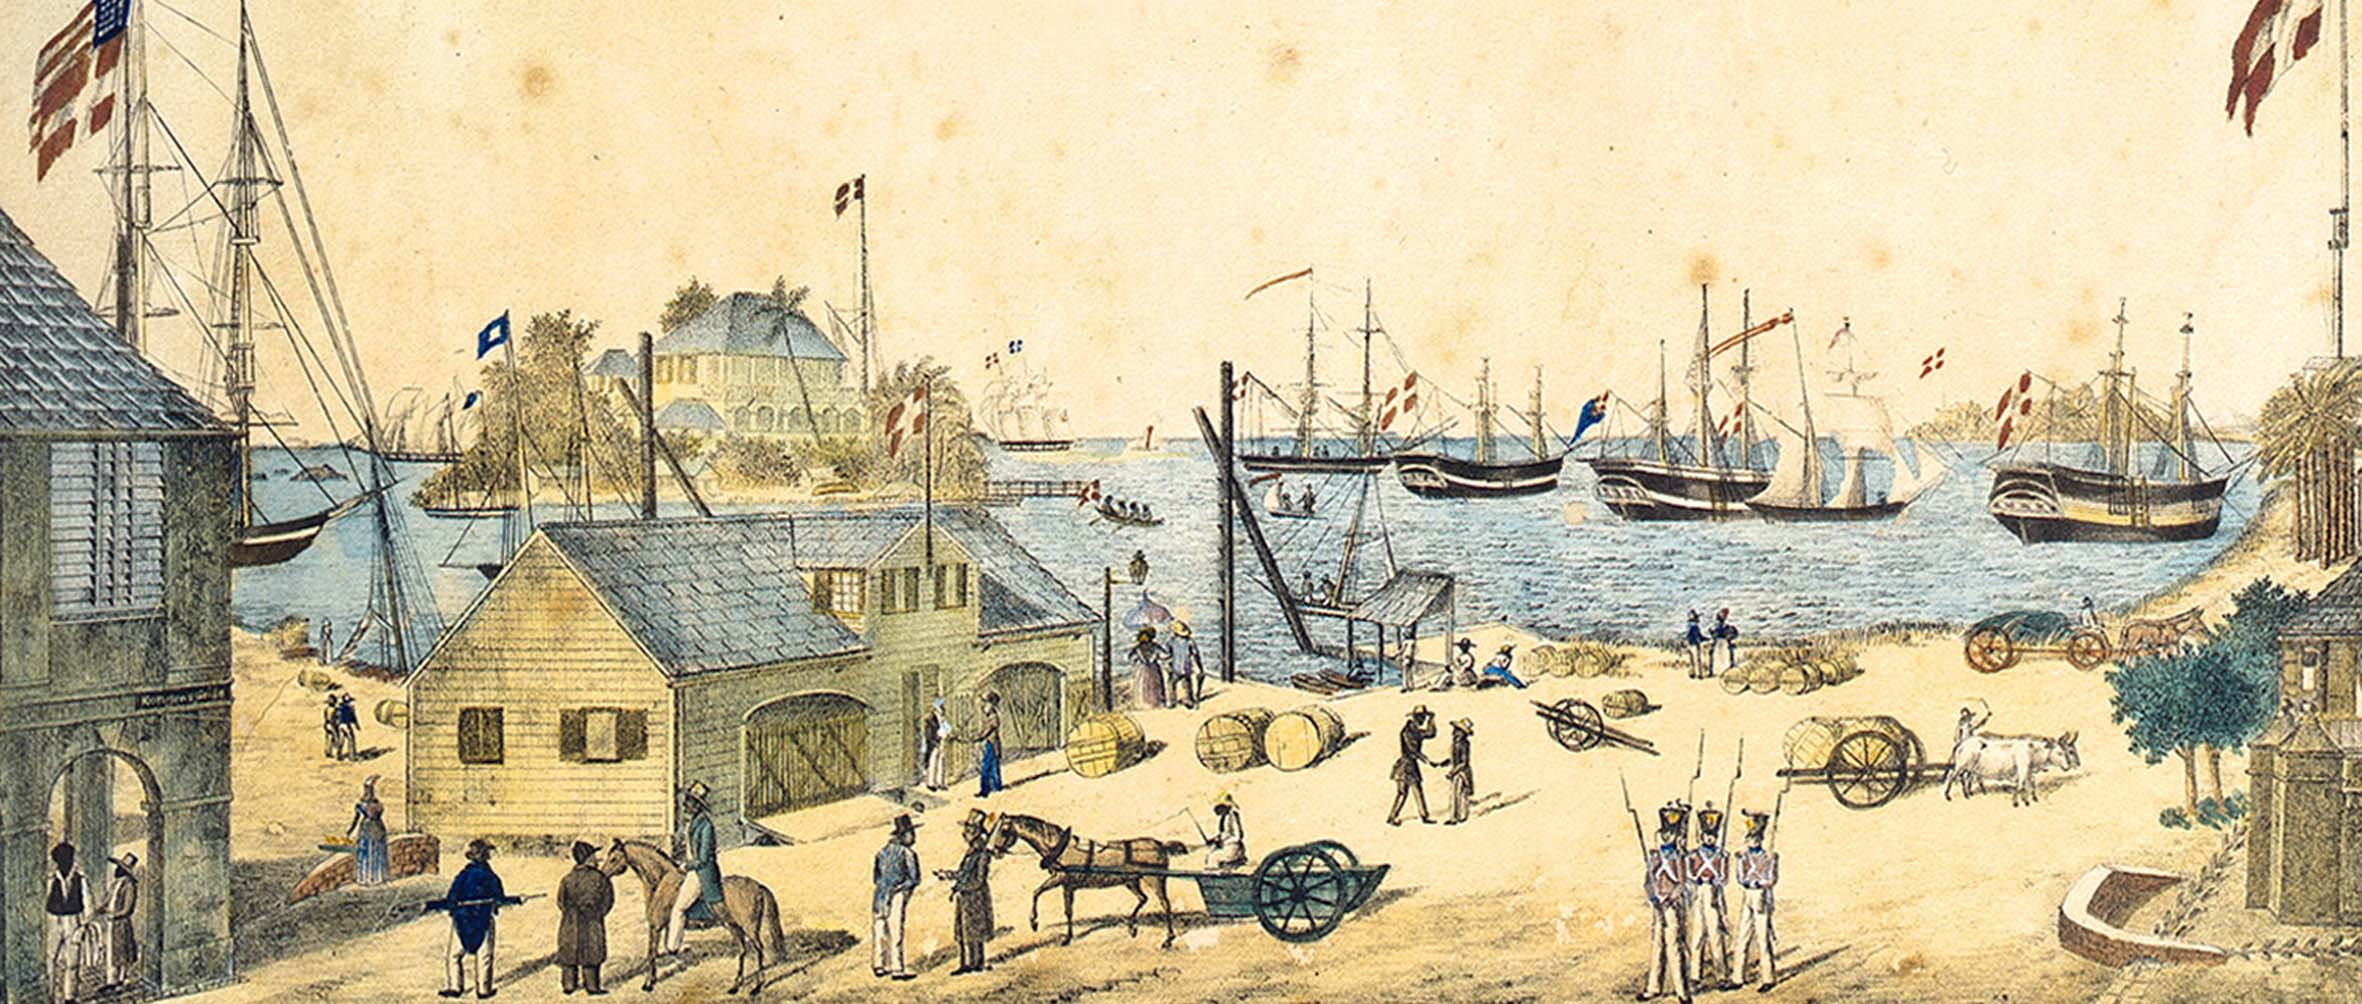 Christiansted St Croix 1830_WEB